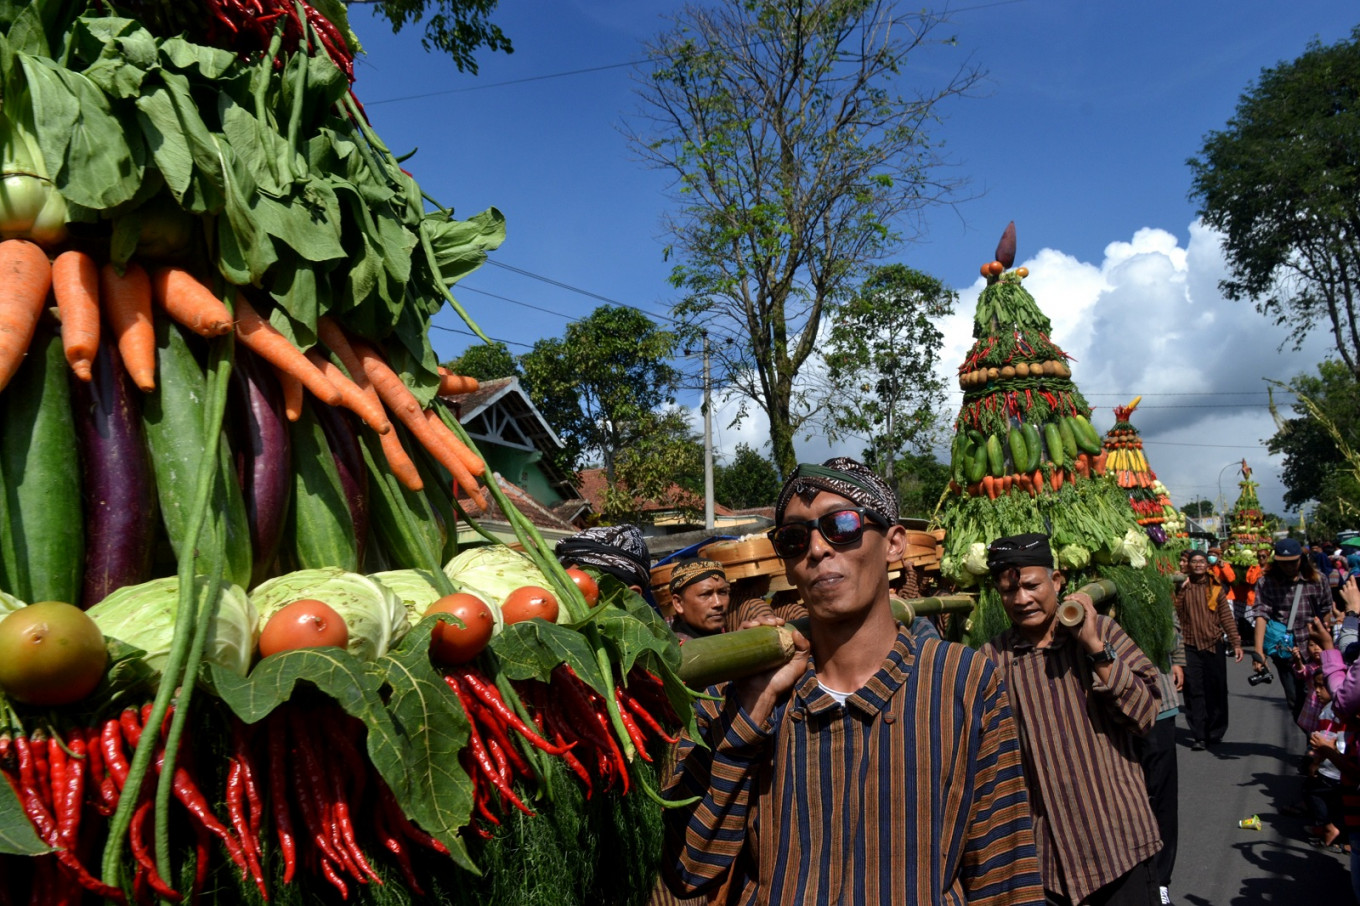 The seven gunungan of harvested food and seven gunungan of Cepogo's signature dishes are paraded at the festival.